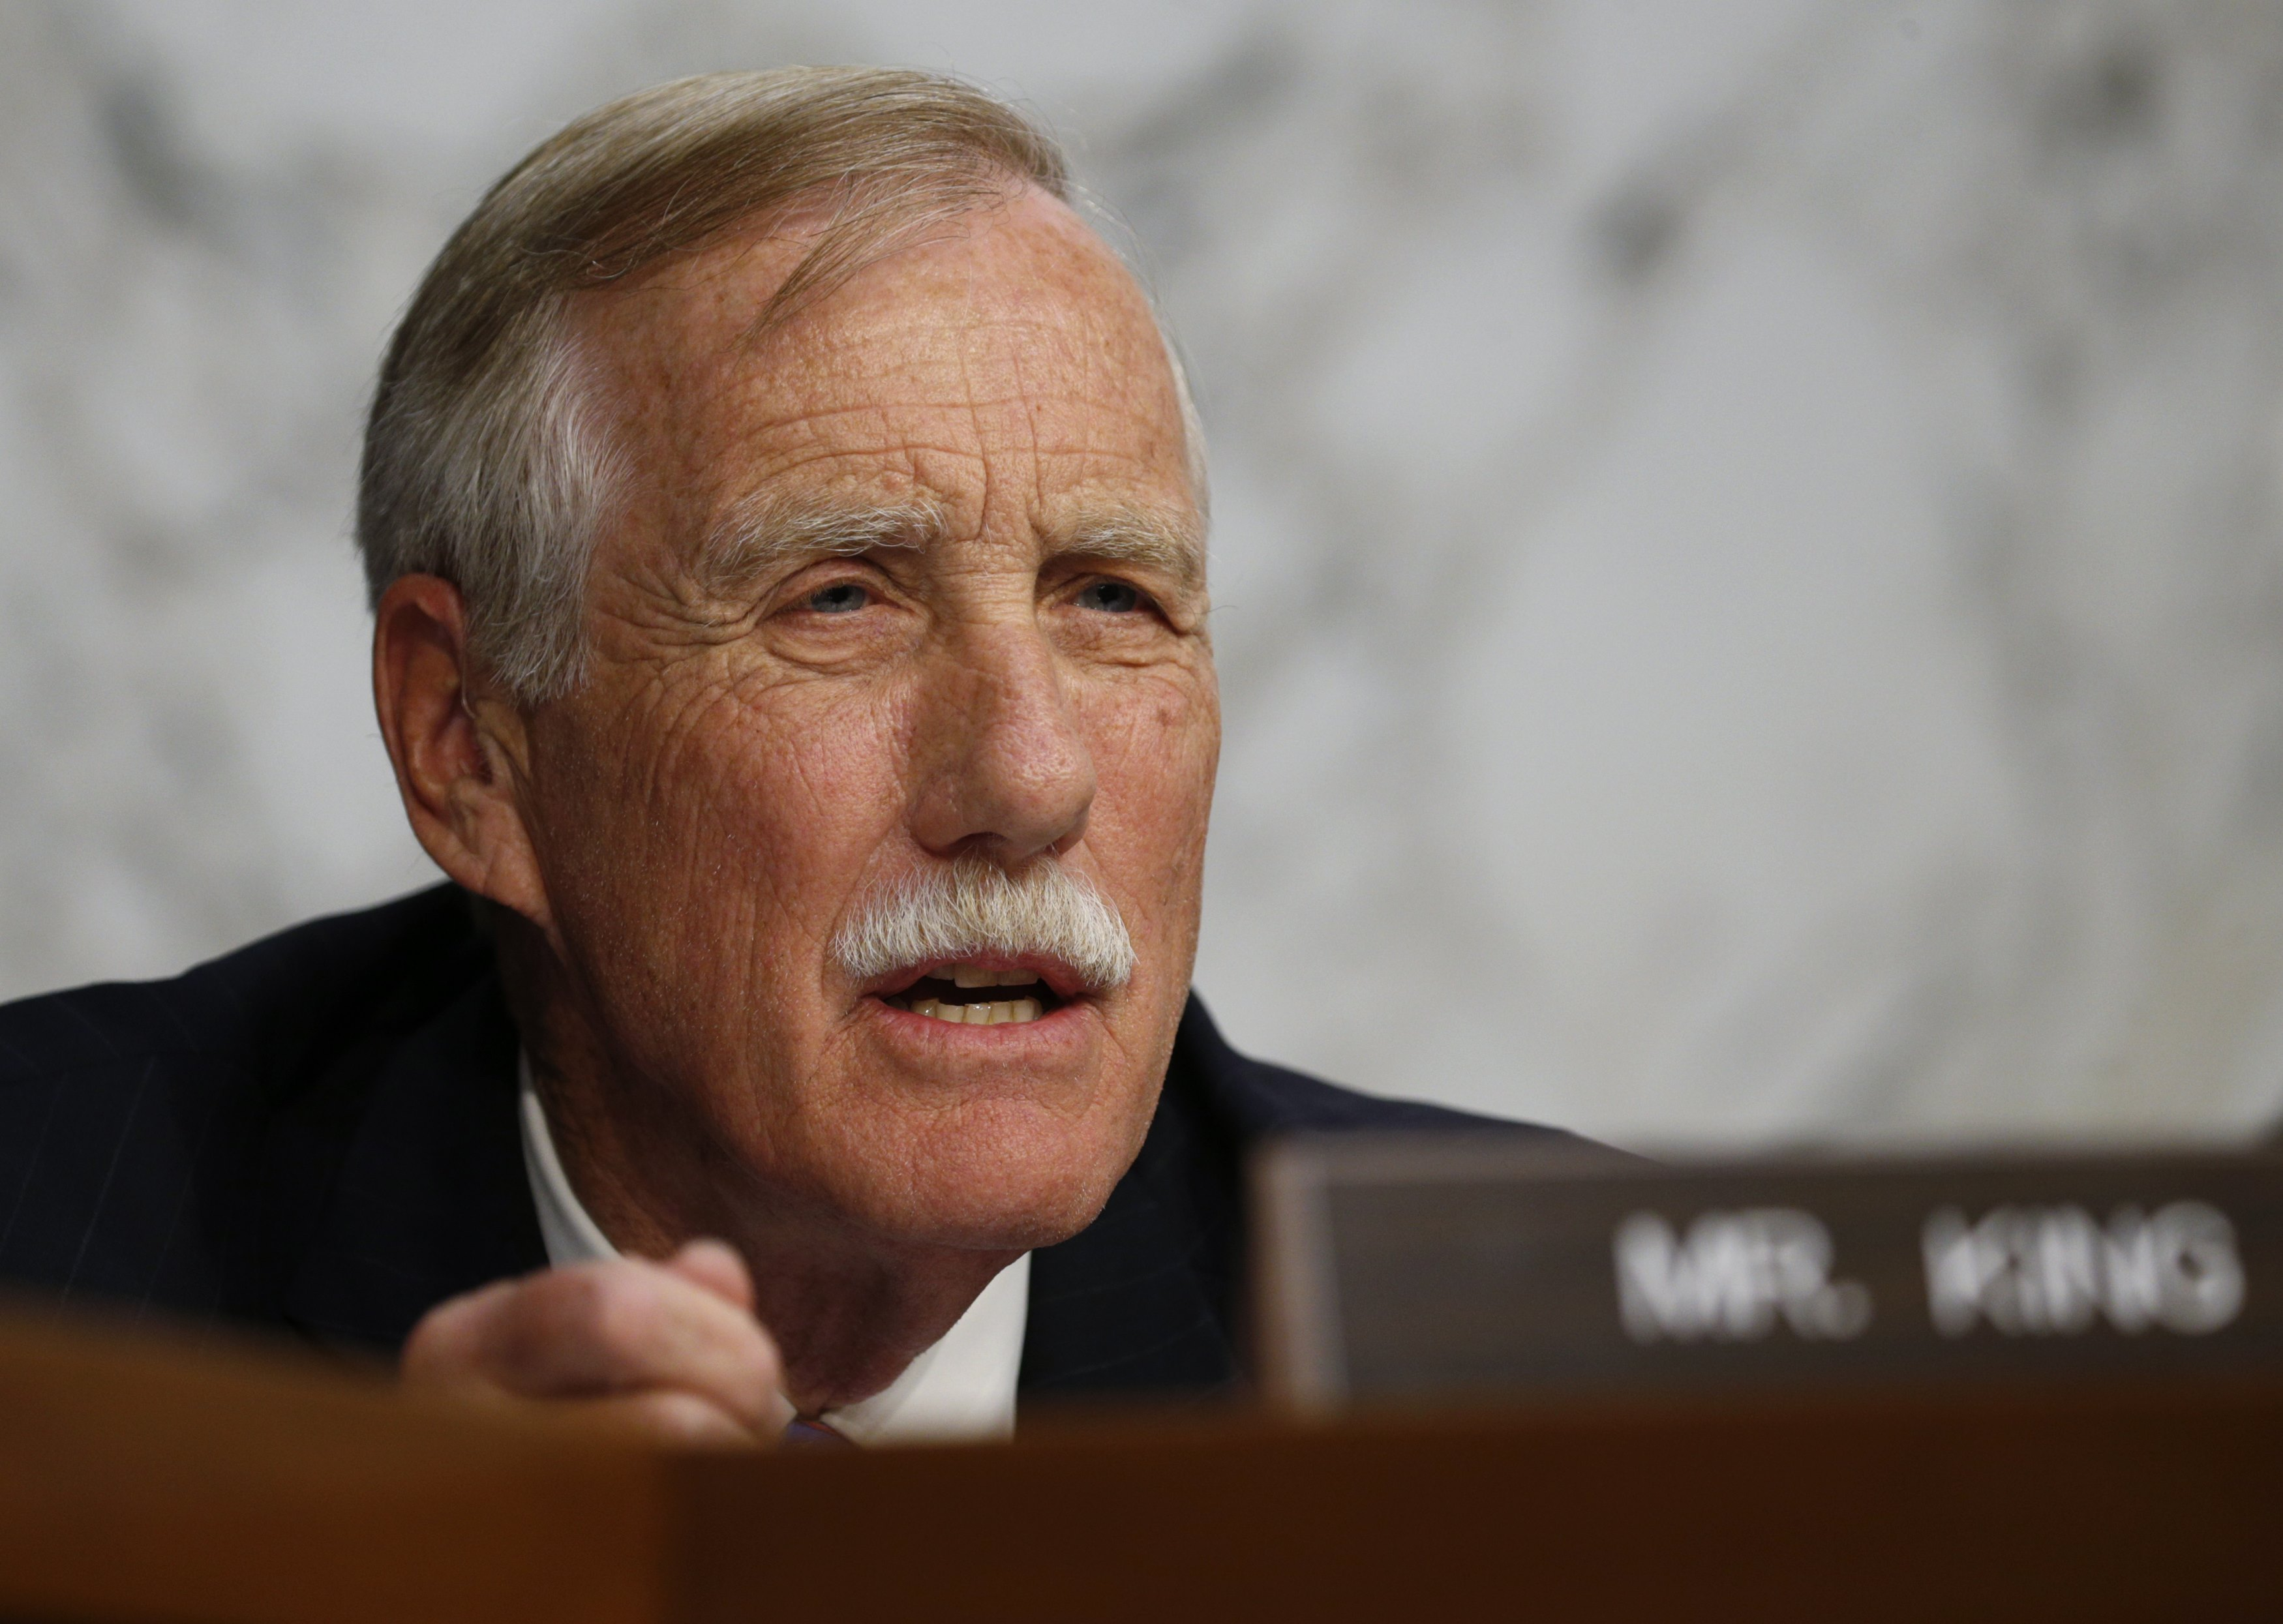 Senator Angus King (I-ME) asks questions at a Senate Intelligence Committee hearing on the Foreign Intelligence Surveillance Act (FISA) in Washington on June 7, 2017. (REUTERS/Kevin Lamarque)